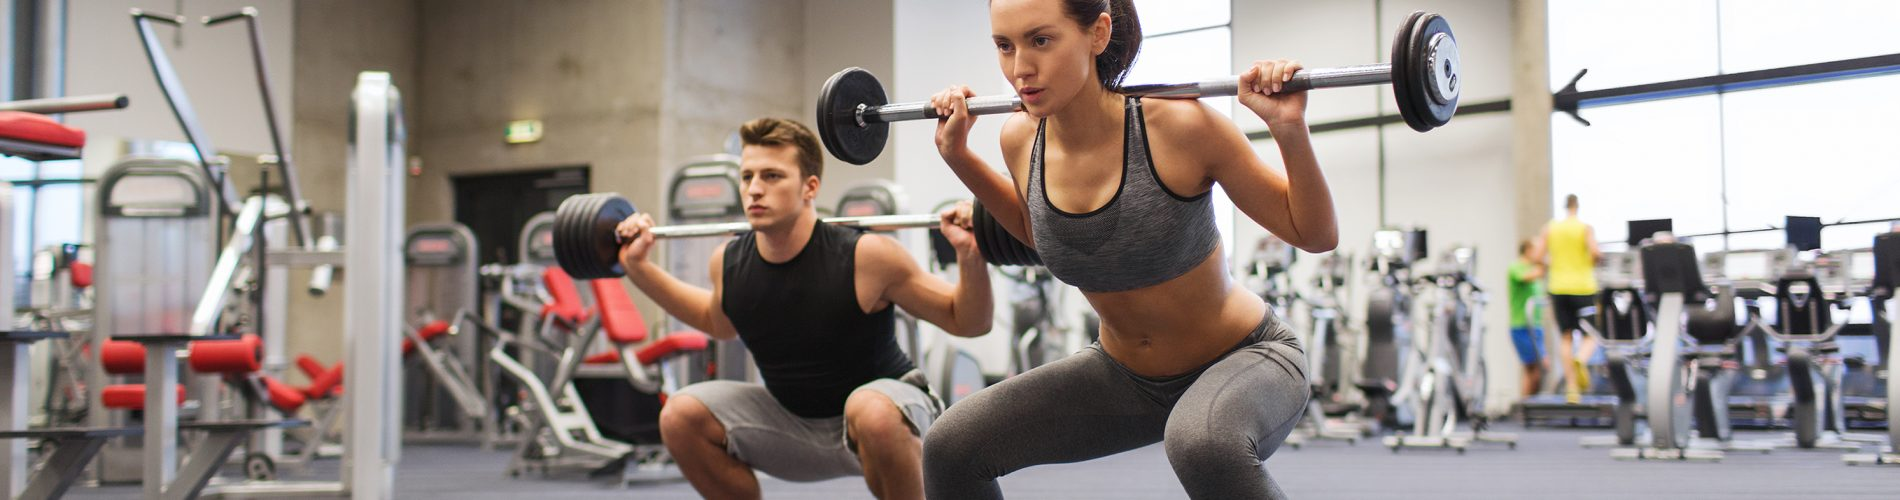 Man and Woman doing Squats - Simply Gym